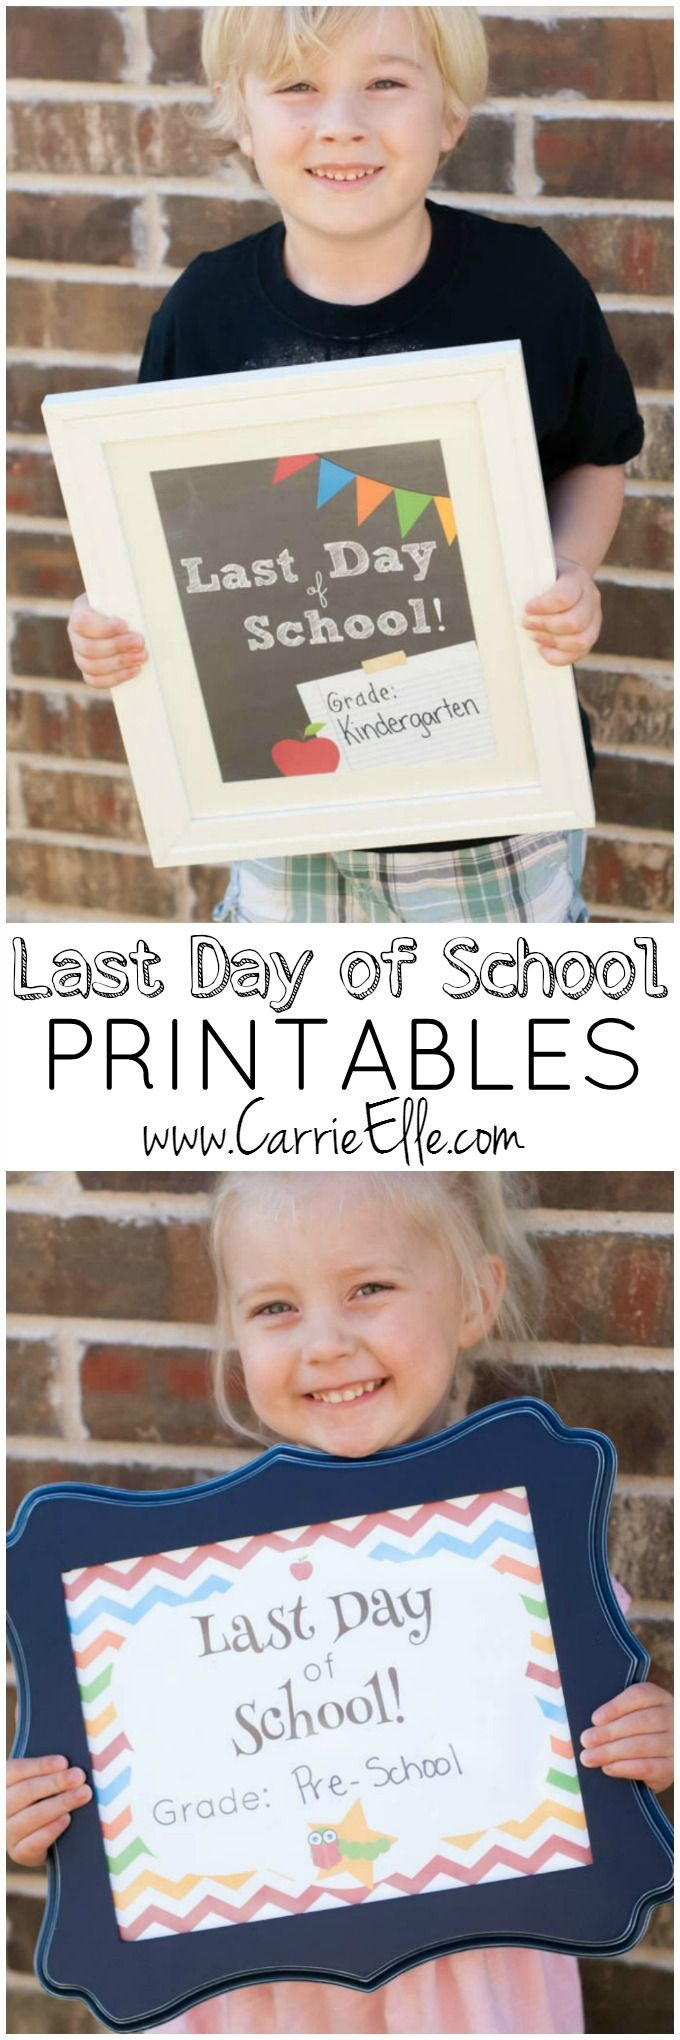 FREE Last Day of School Printables -  such a fun way to help celebrate and remember an exciting day in your child's life!